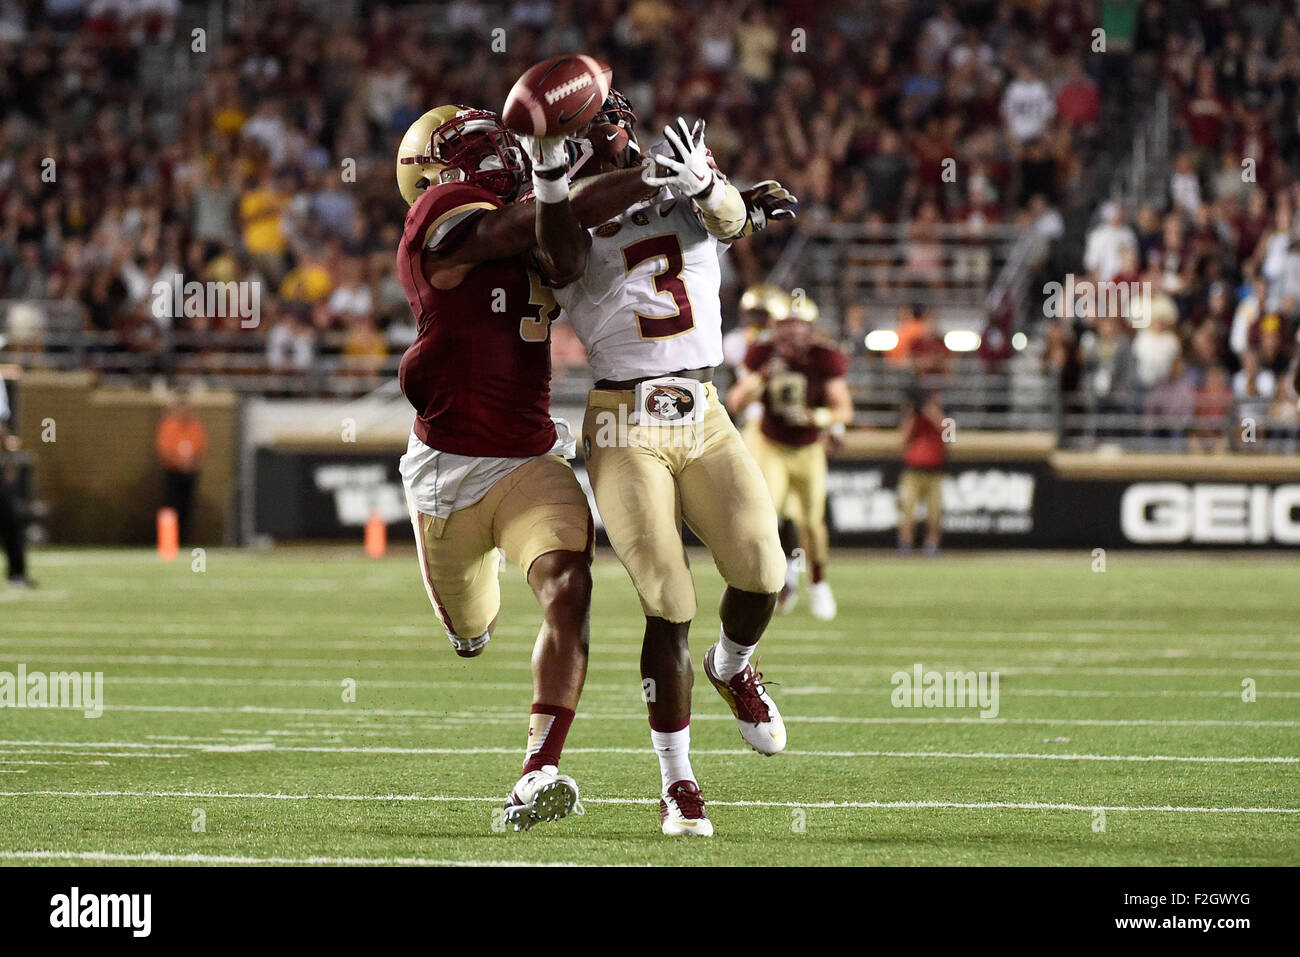 Chestnut Hill, Mass. USA. 18th Sep, 2015. Boston College Eagles defensive back Kamrin Moore (5) disrupts a pass - Stock Image